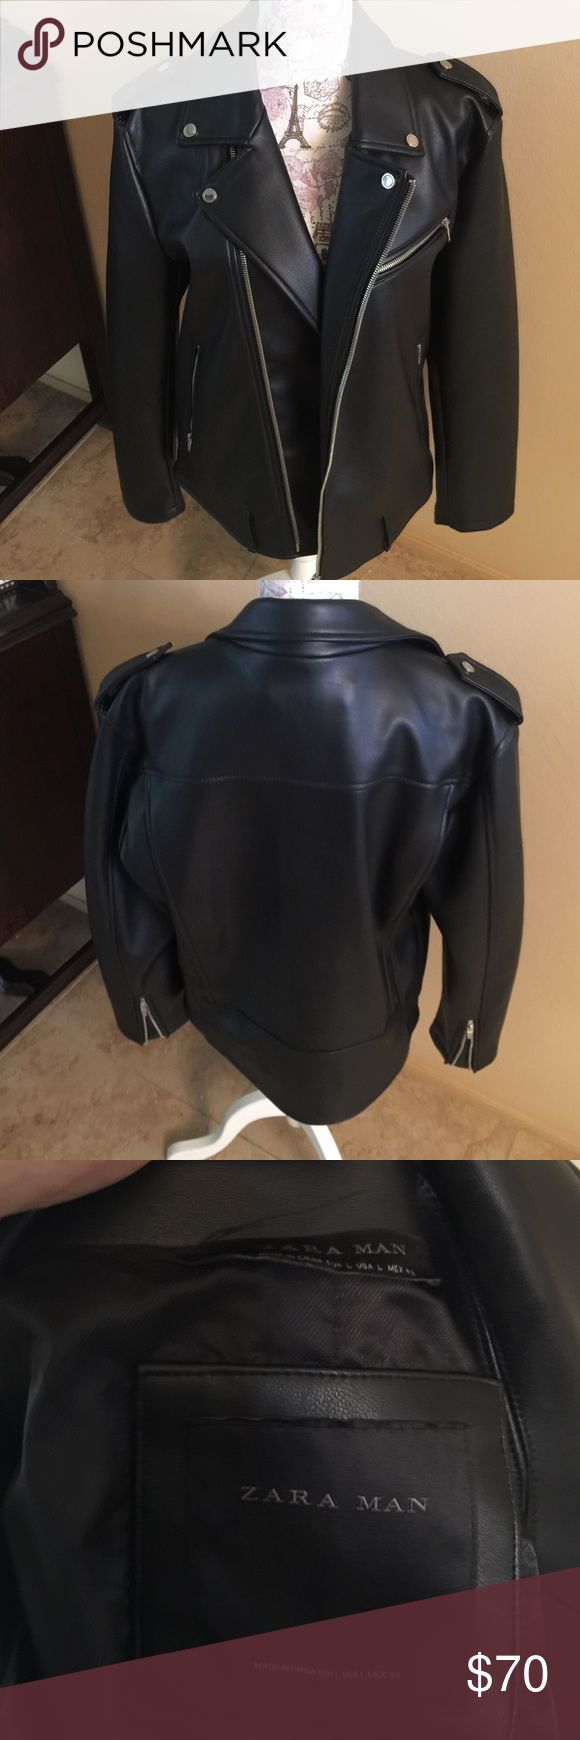 Mens Zara Faux Leather Jacket Size L Almost Brand New Mens Zara Faux Leather Motorcycle Jacket Size Large. Worn Once Absolutely No Stains Or Tears. Zara Jackets & Coats